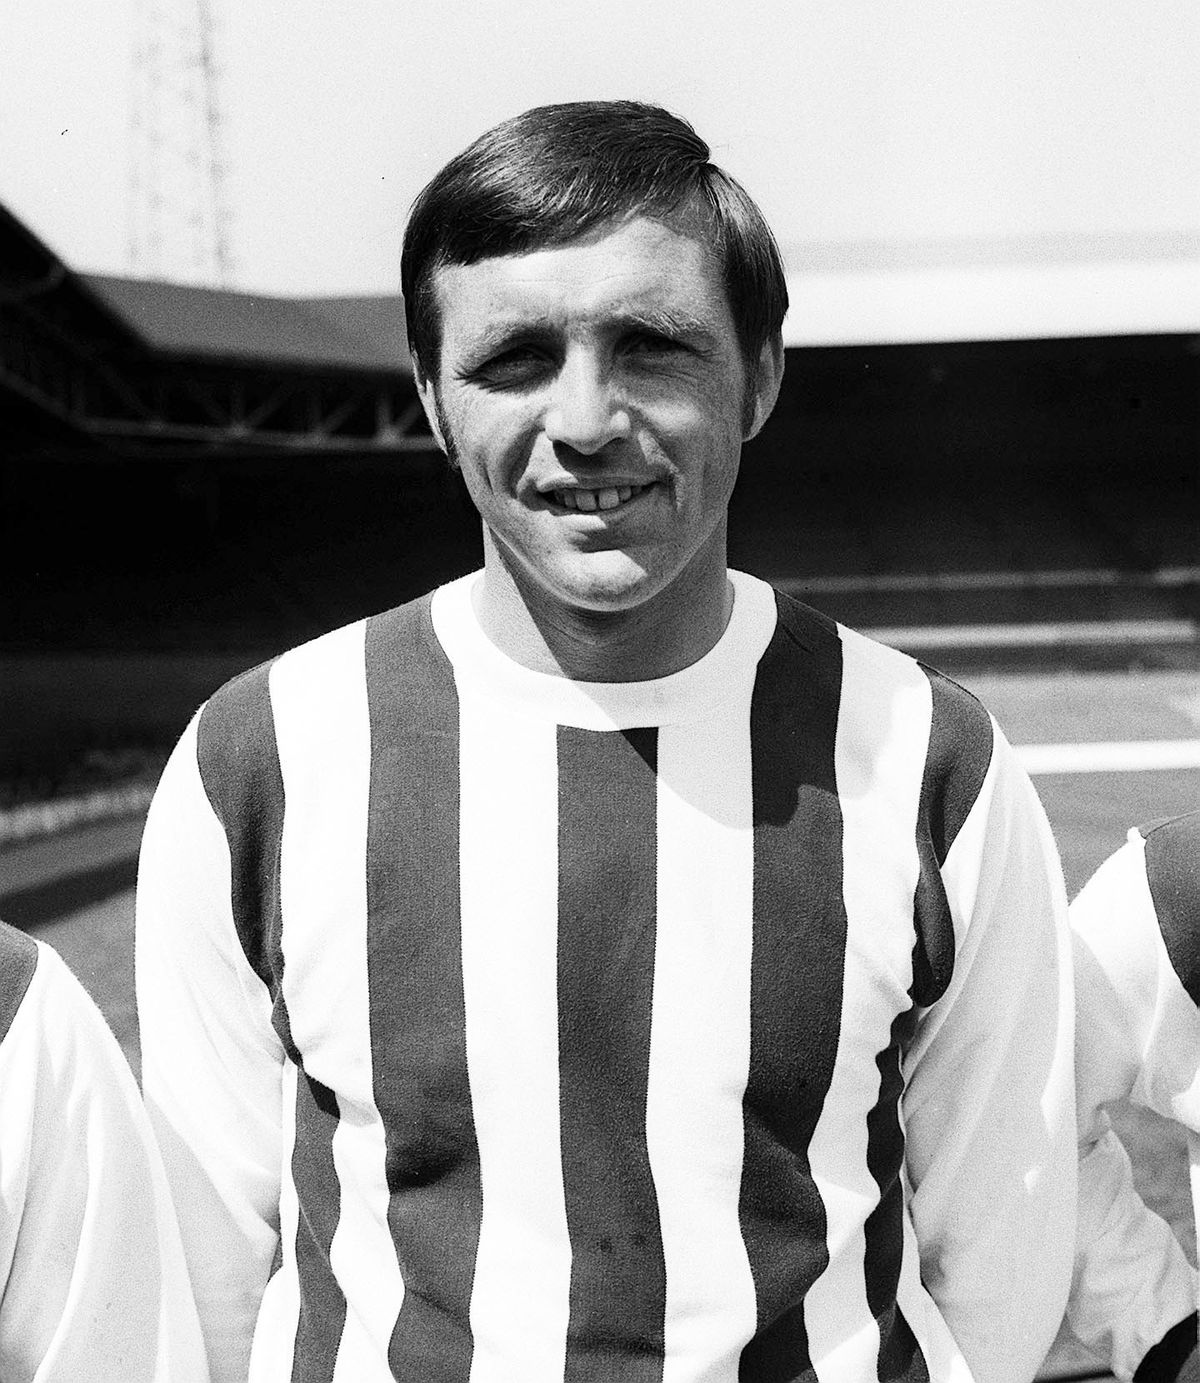 Jeff Astle during his playing career